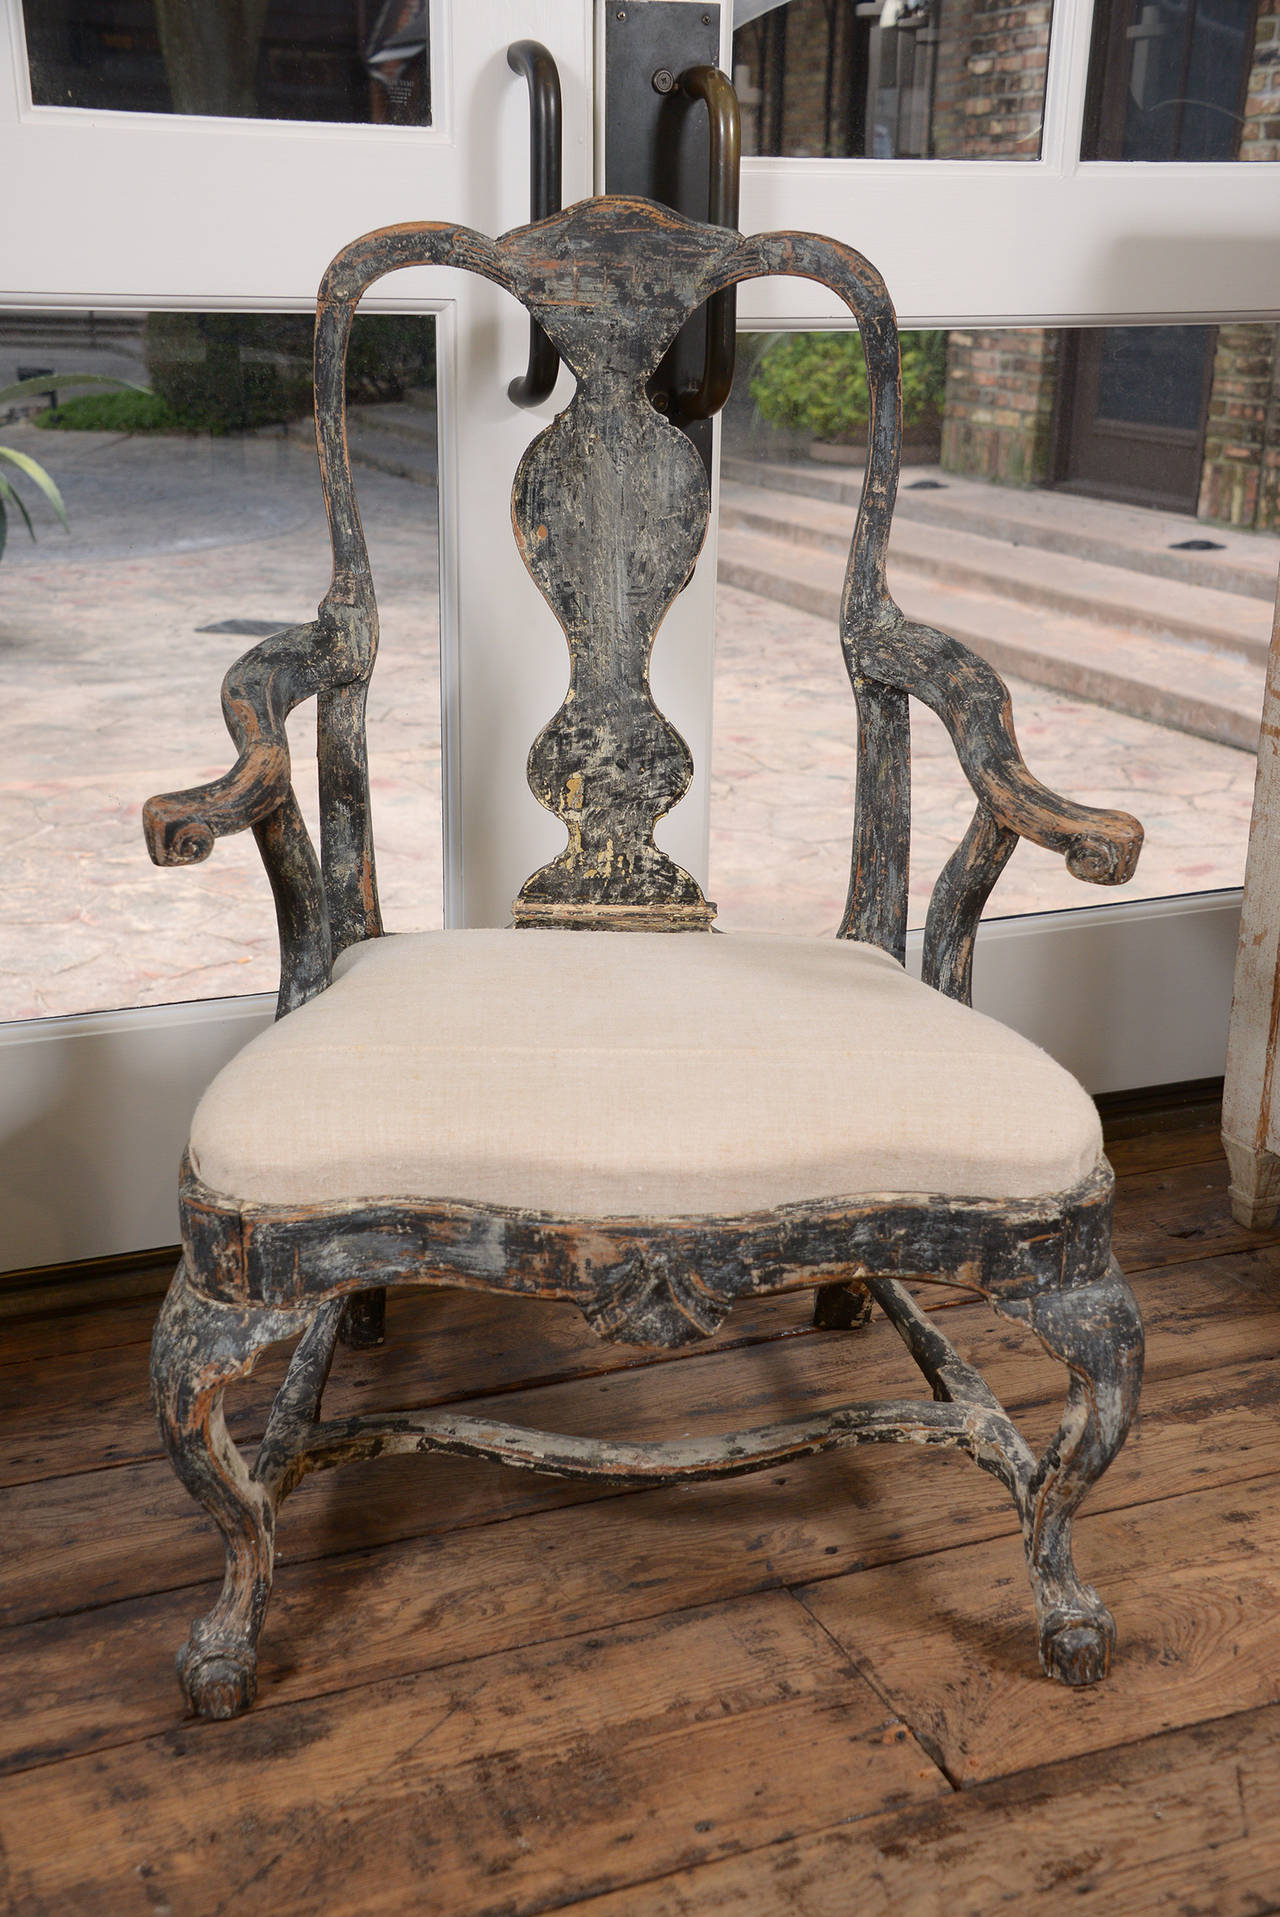 Handsome Swedish painted chair in the Rococo period, circa 1760. Wonderful hand scraped paint finish back to original traces of paint. A great chair.